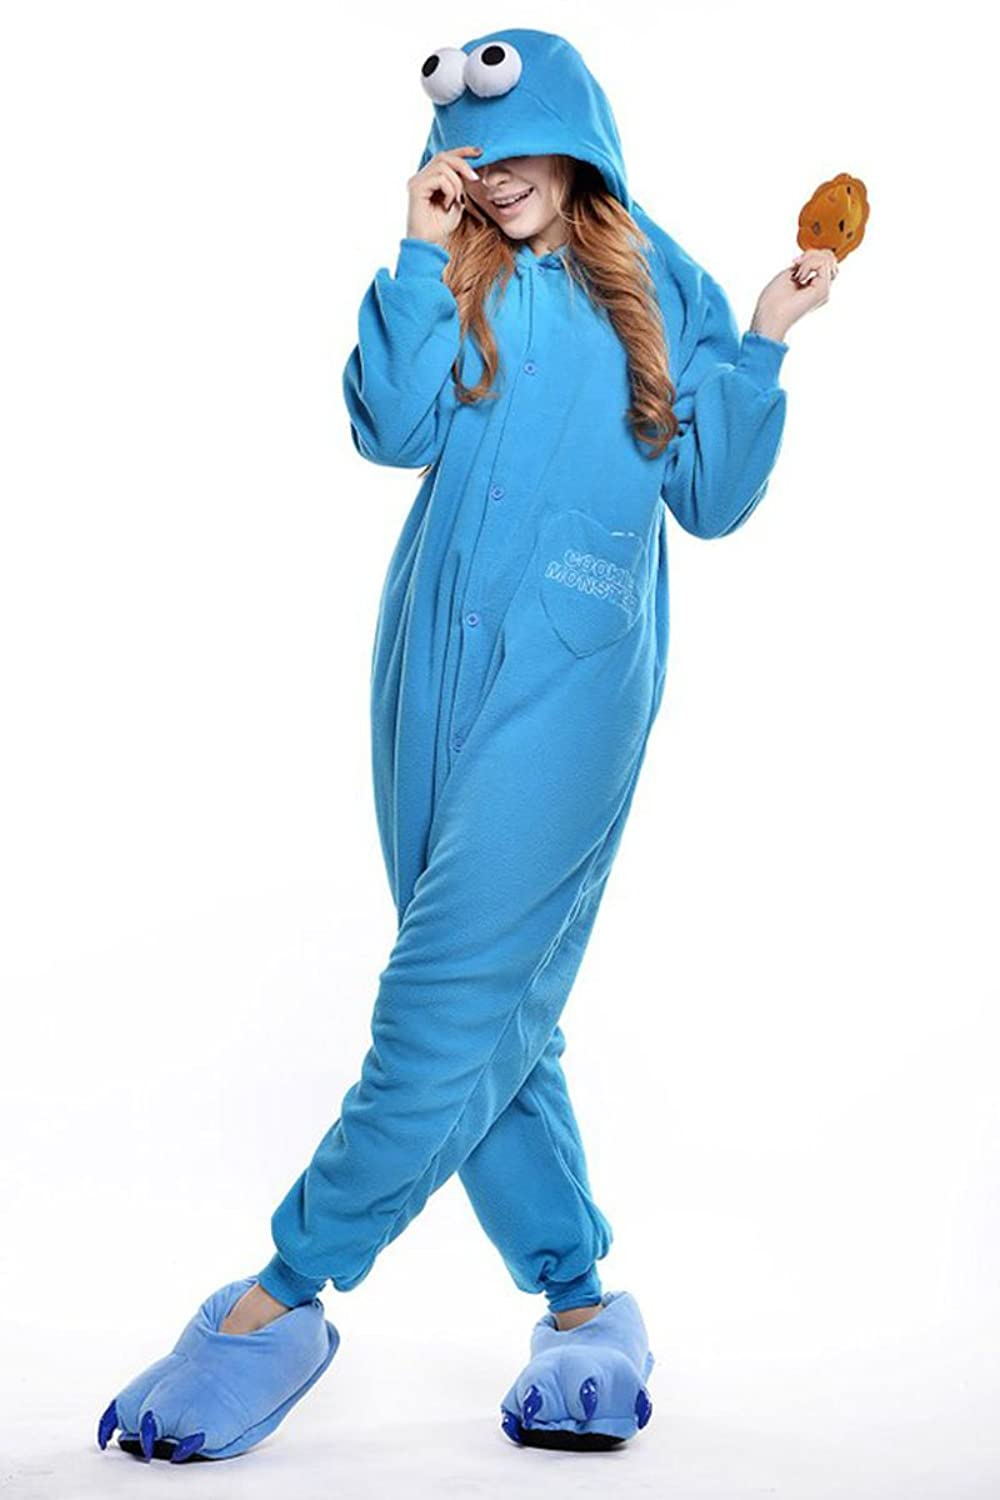 amazon com superlieu cookie monster kigurumi pajamas anime